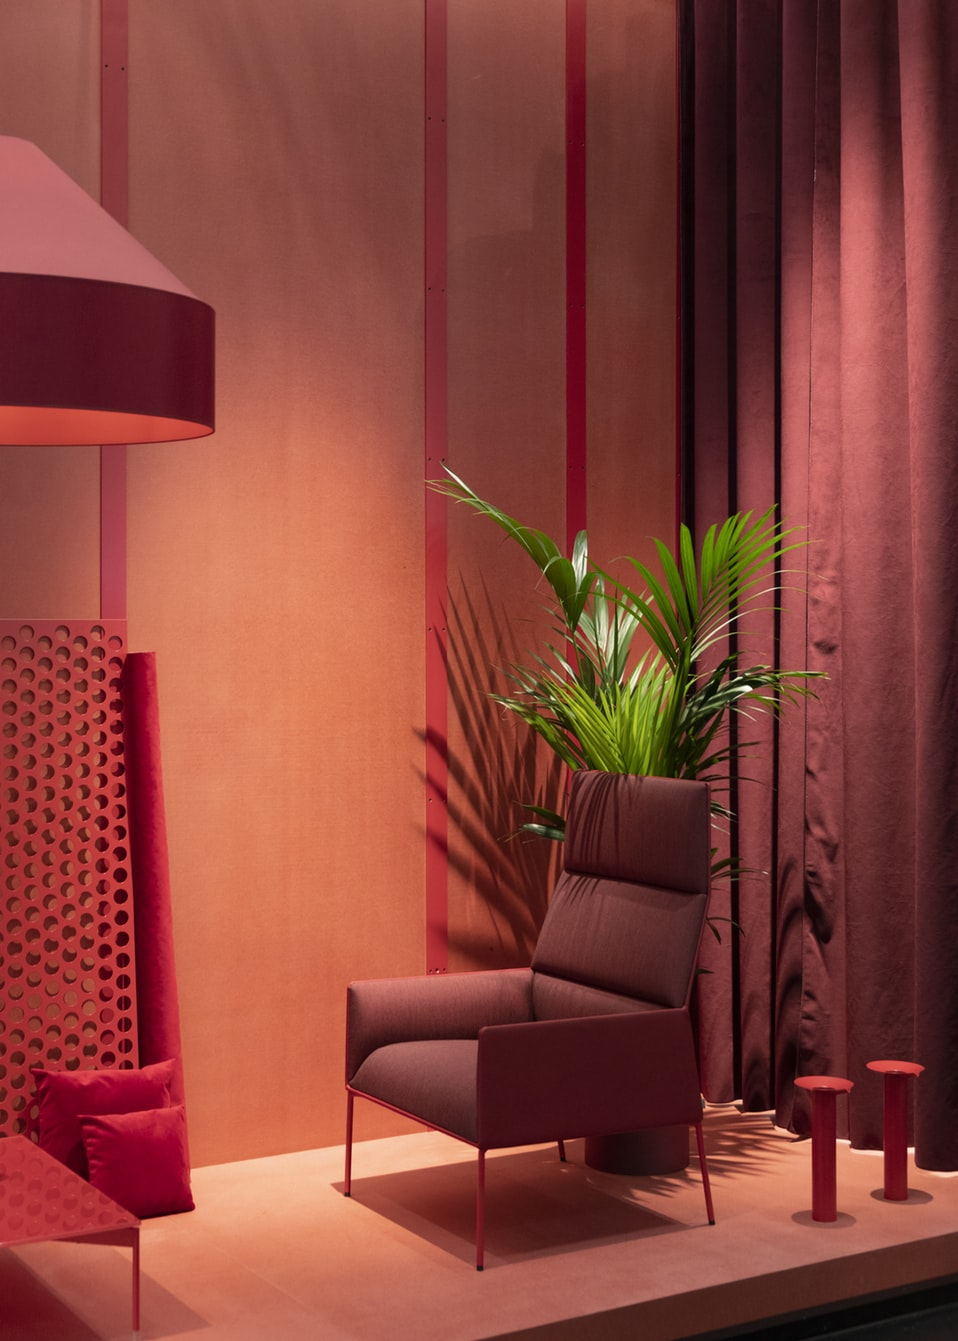 The psychology of interior design and its influence on your subconscious 6